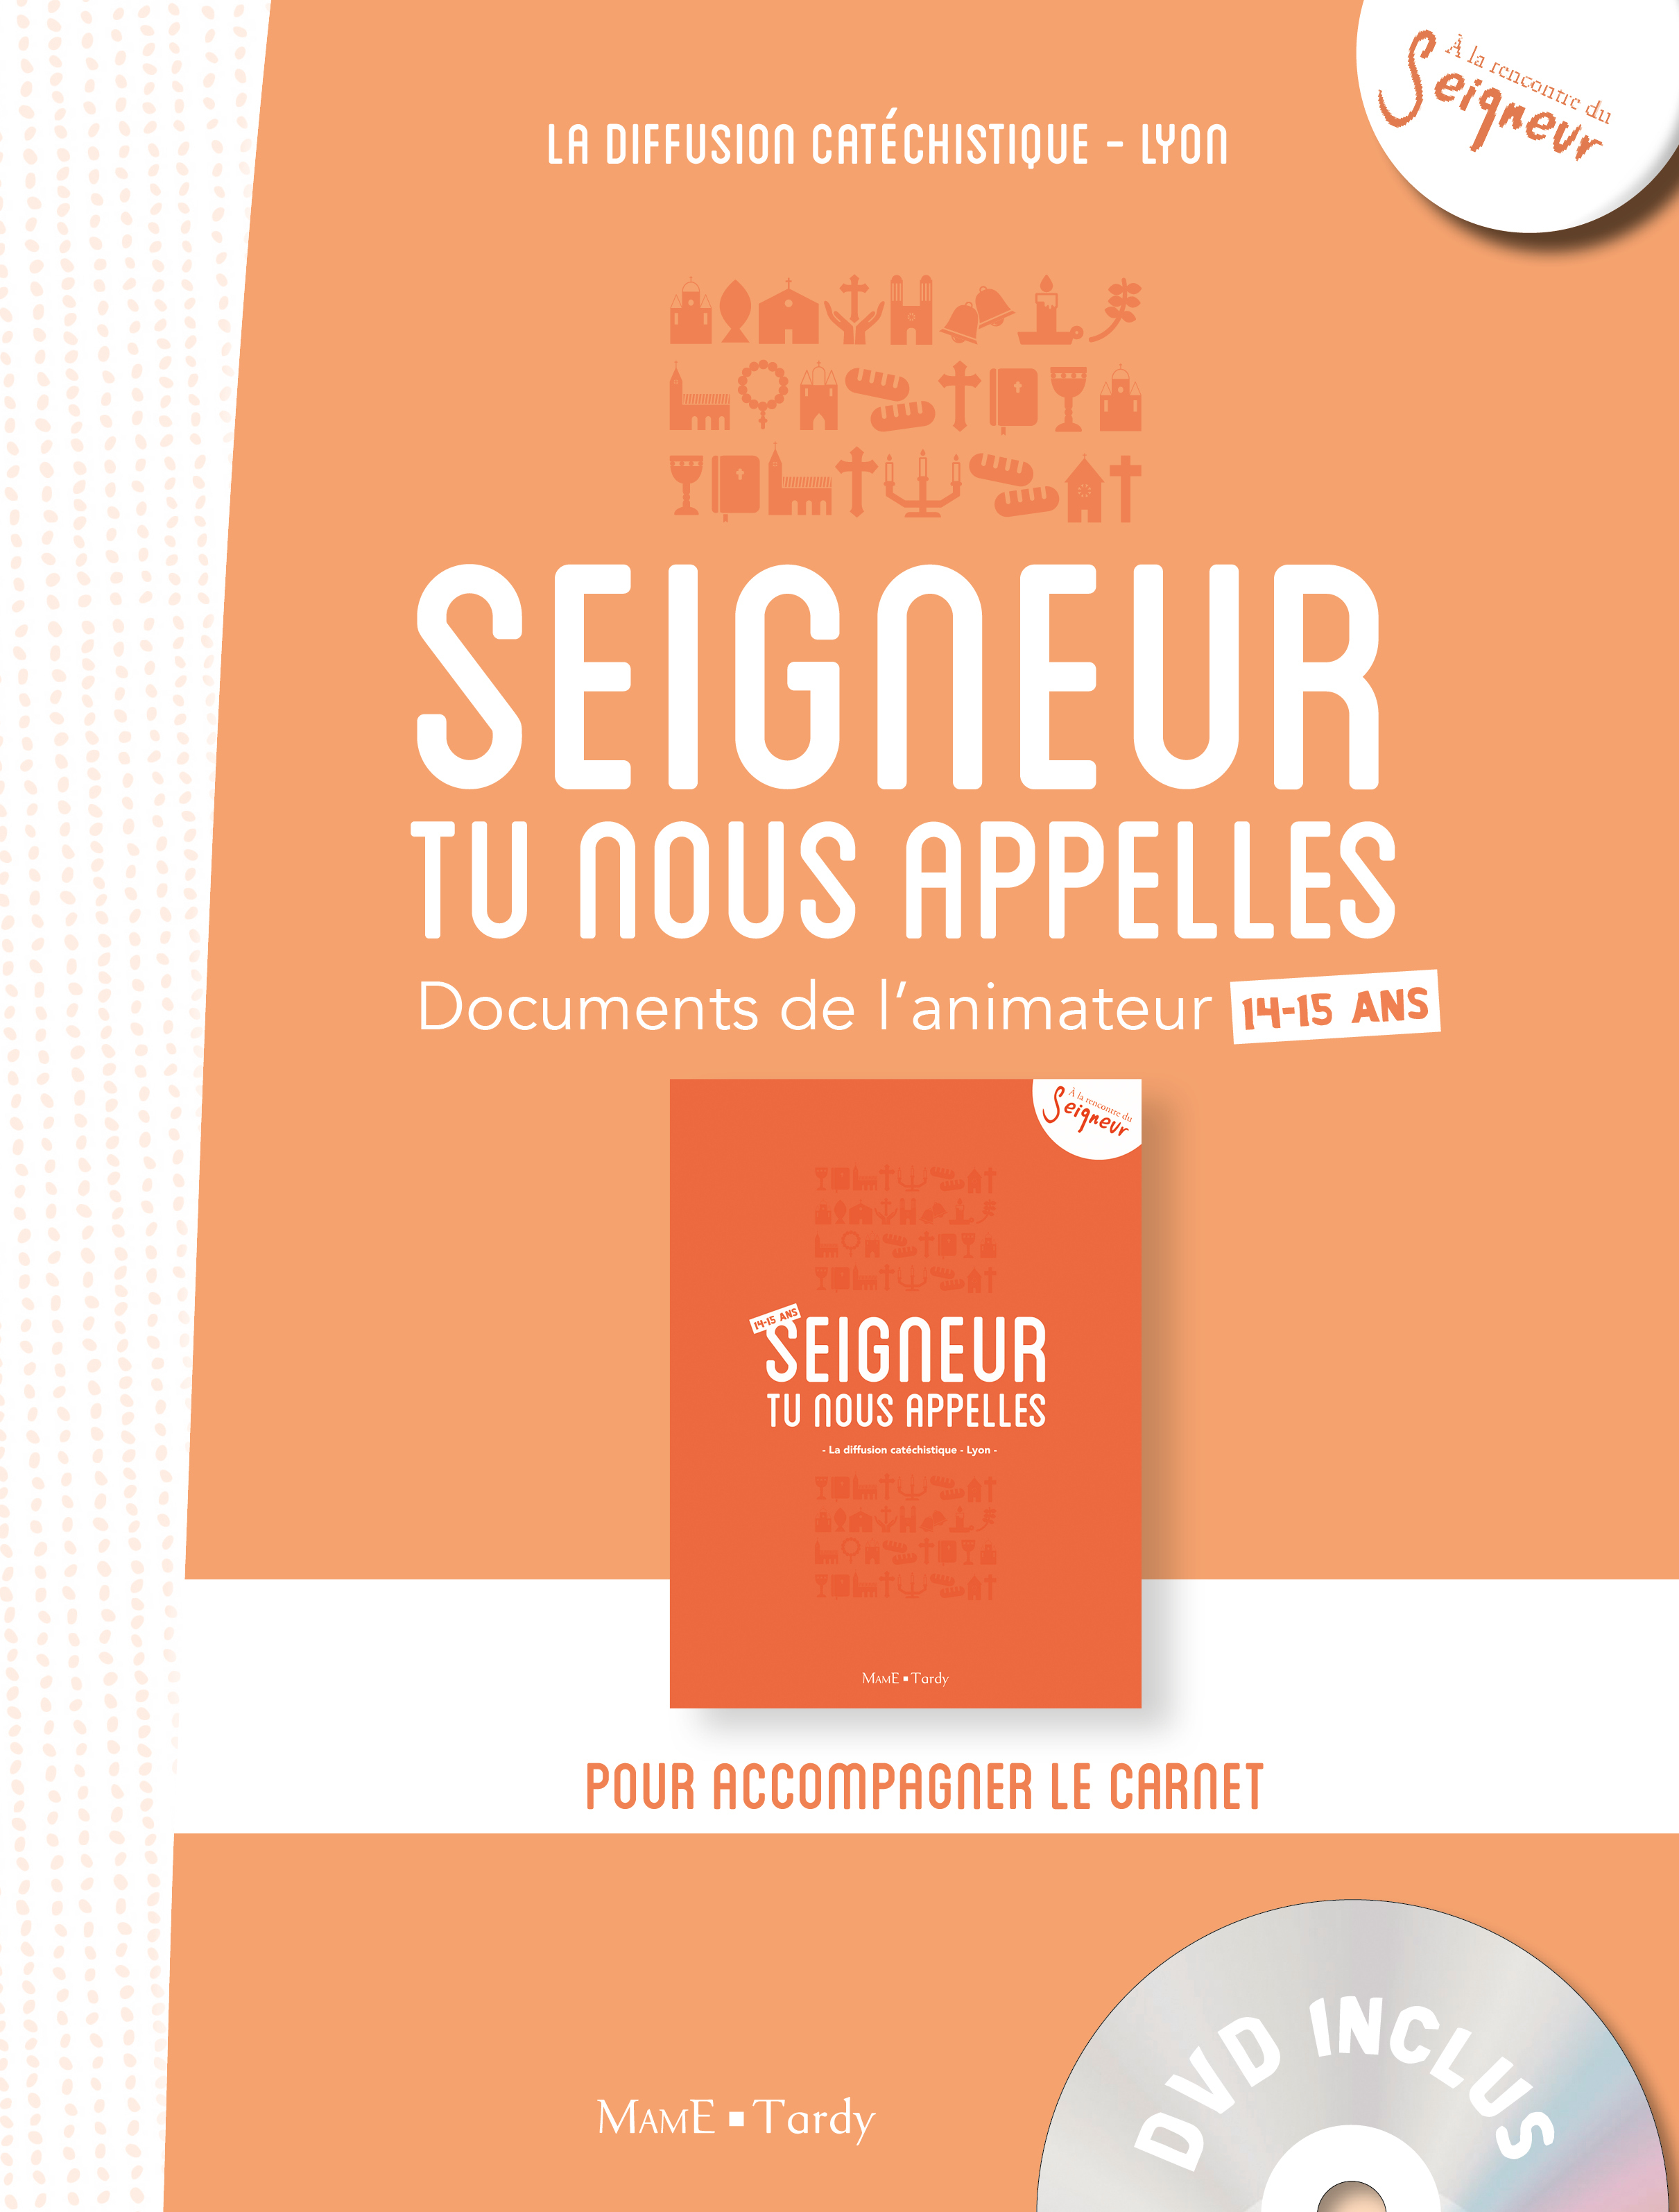 14-15 ANS - DOCUMENT ANIMATEUR + DVD / ORANGE